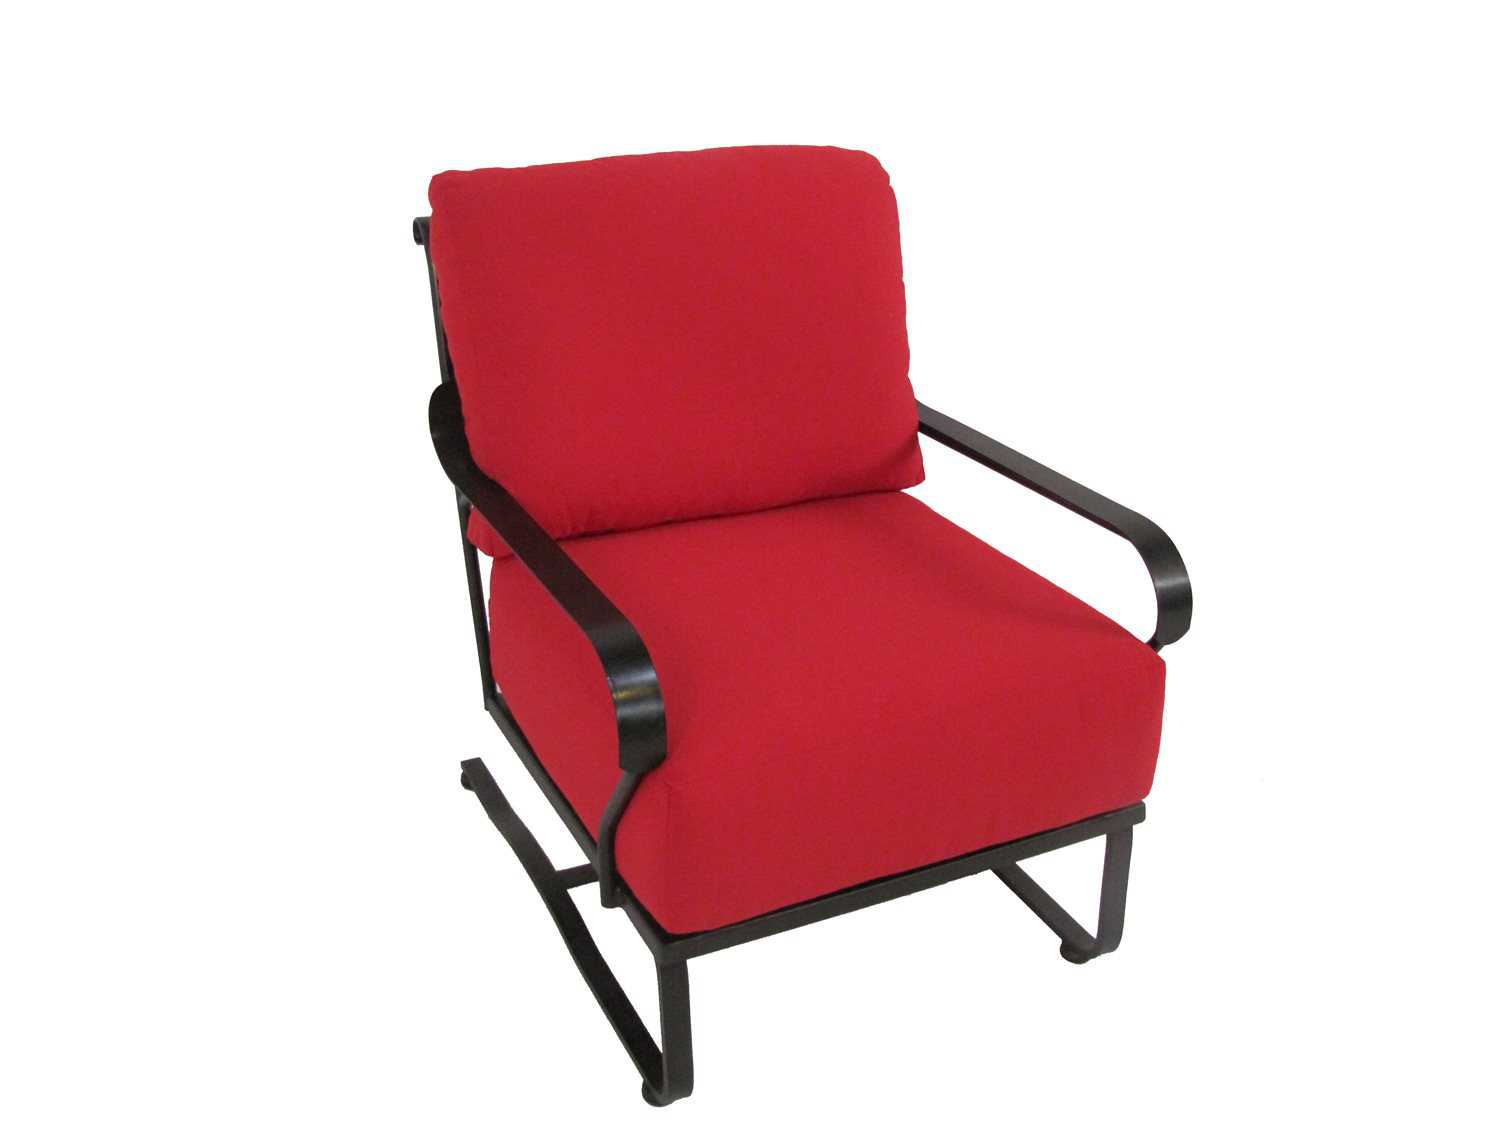 Replacement Cushions For Wrought Iron Patio Chairs